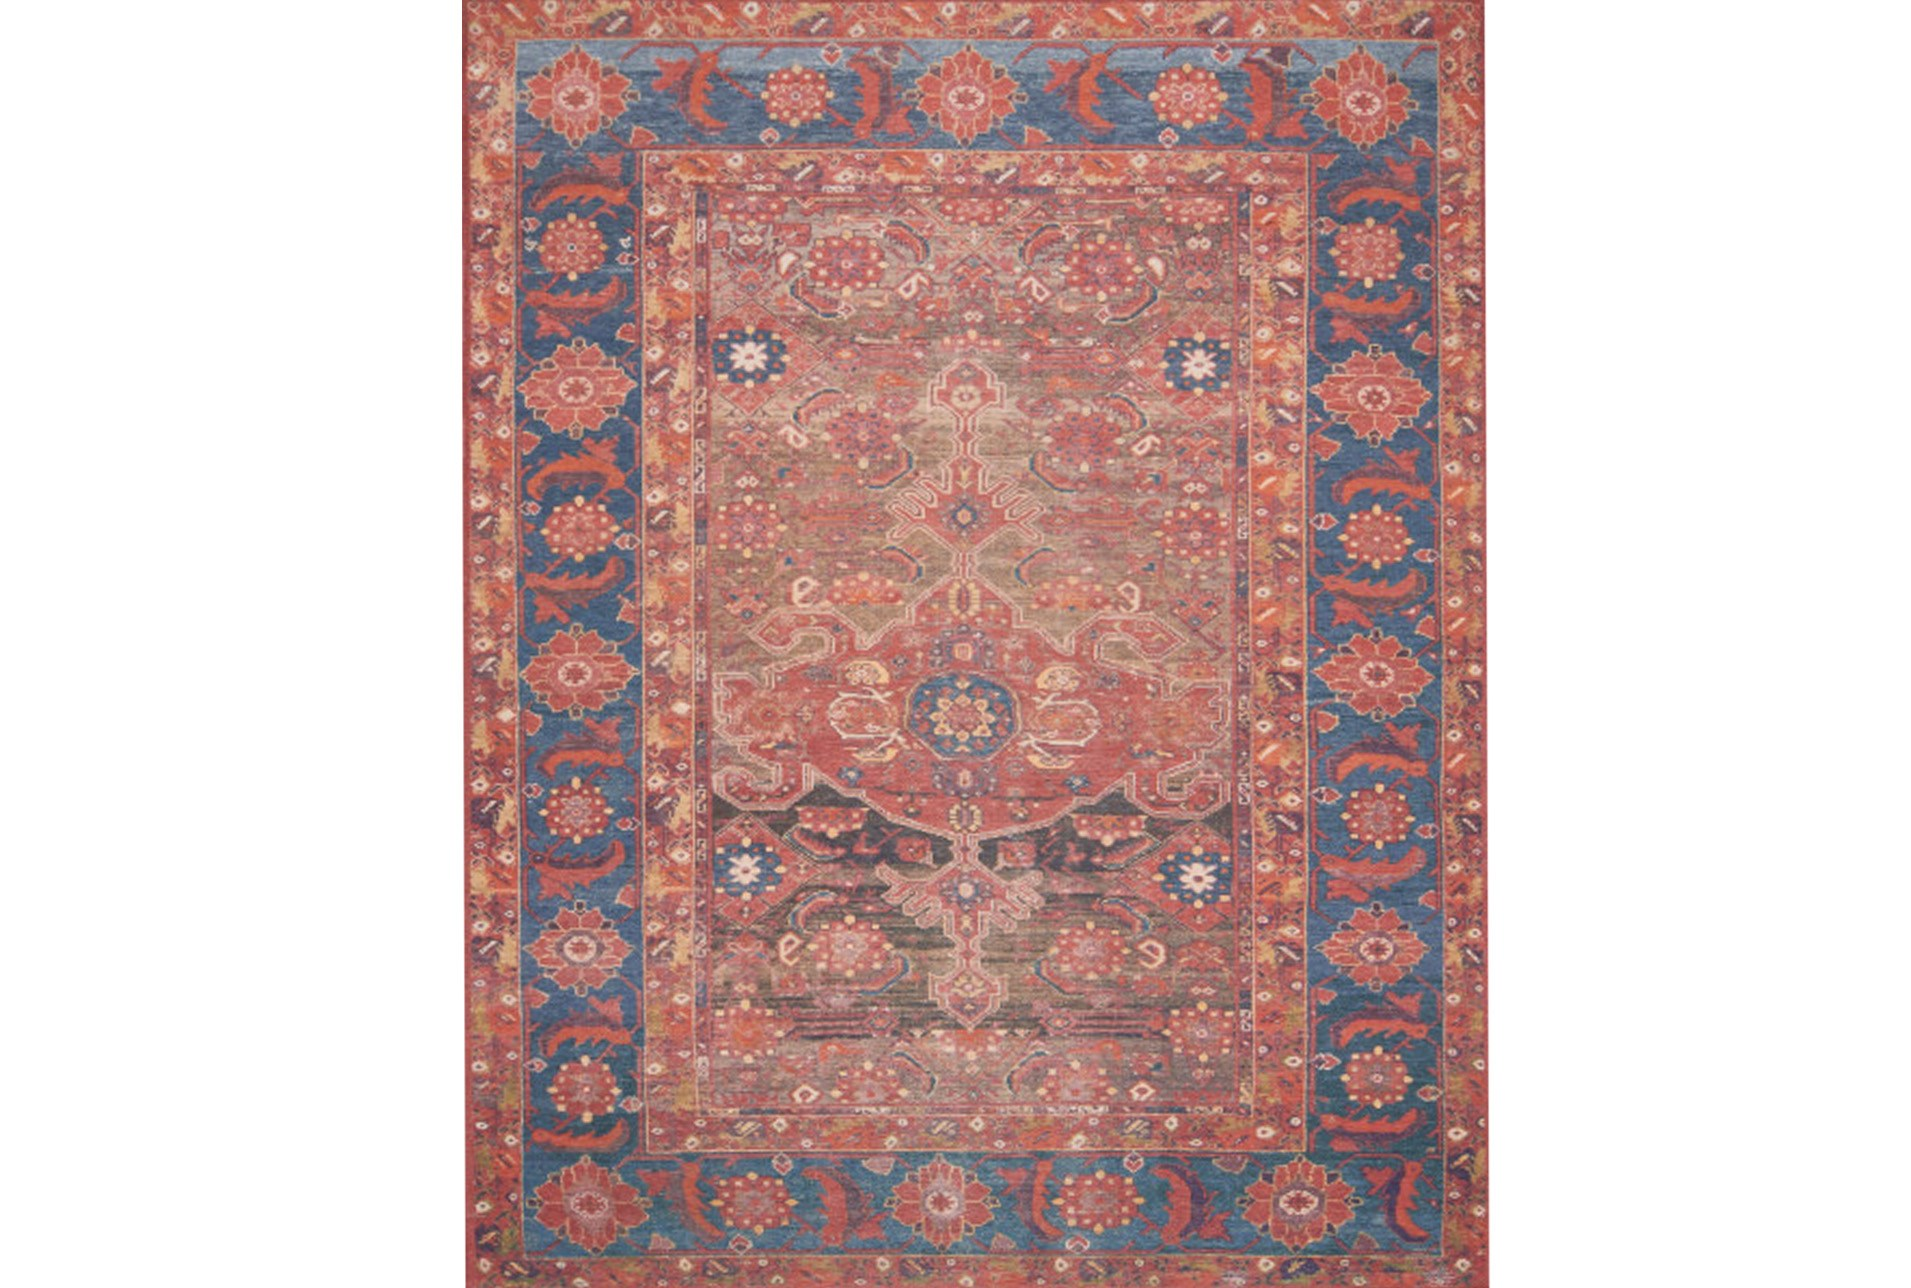 93x117 rug magnolia home lucca rust blue by joanna gaines qty 1 has been successfully added to your cart